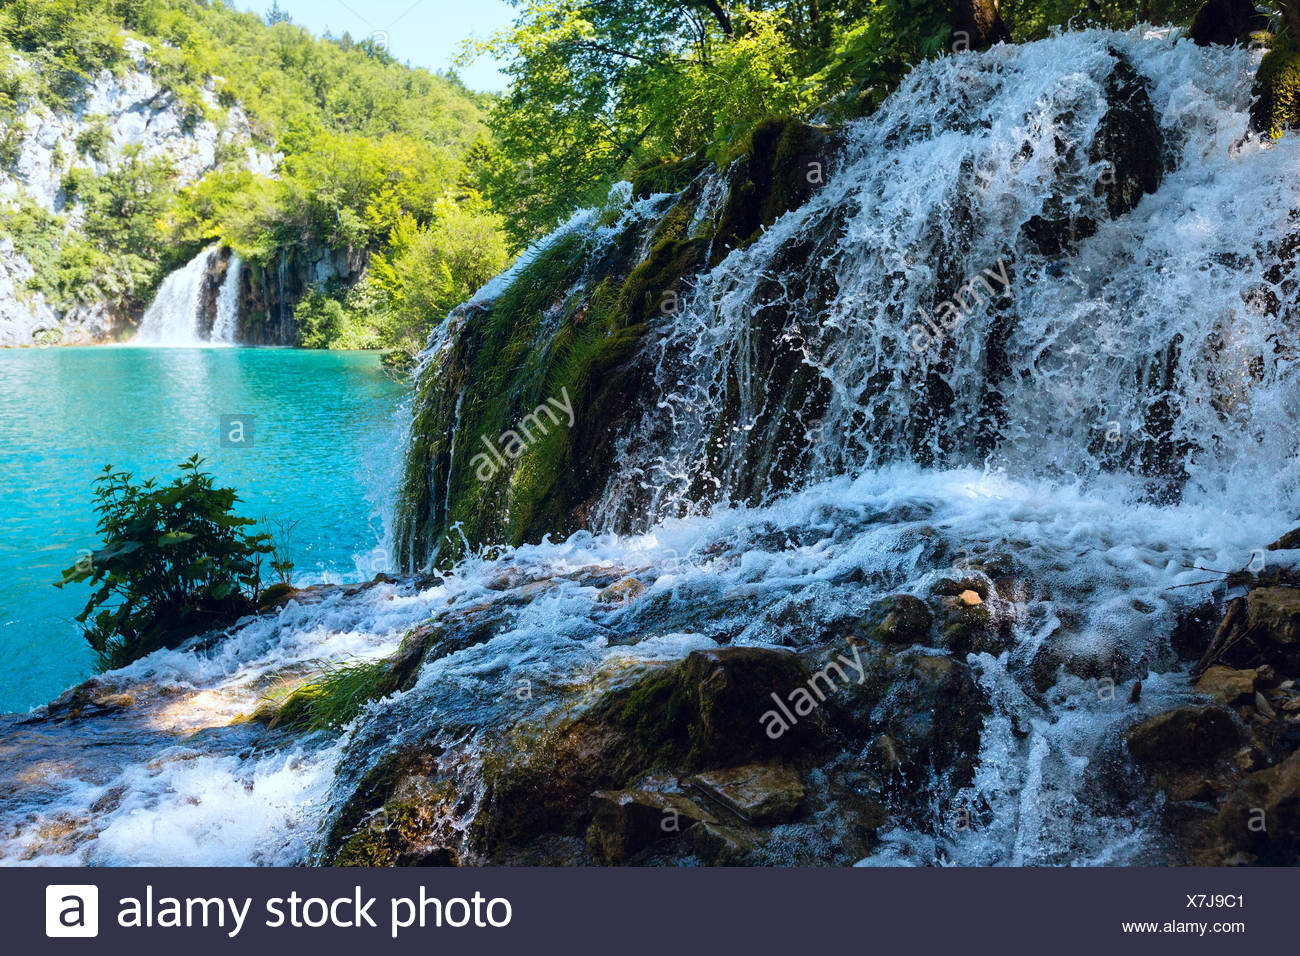 Small waterfall (closeup) in Plitvice Lakes National Park (Croat - Stock Image